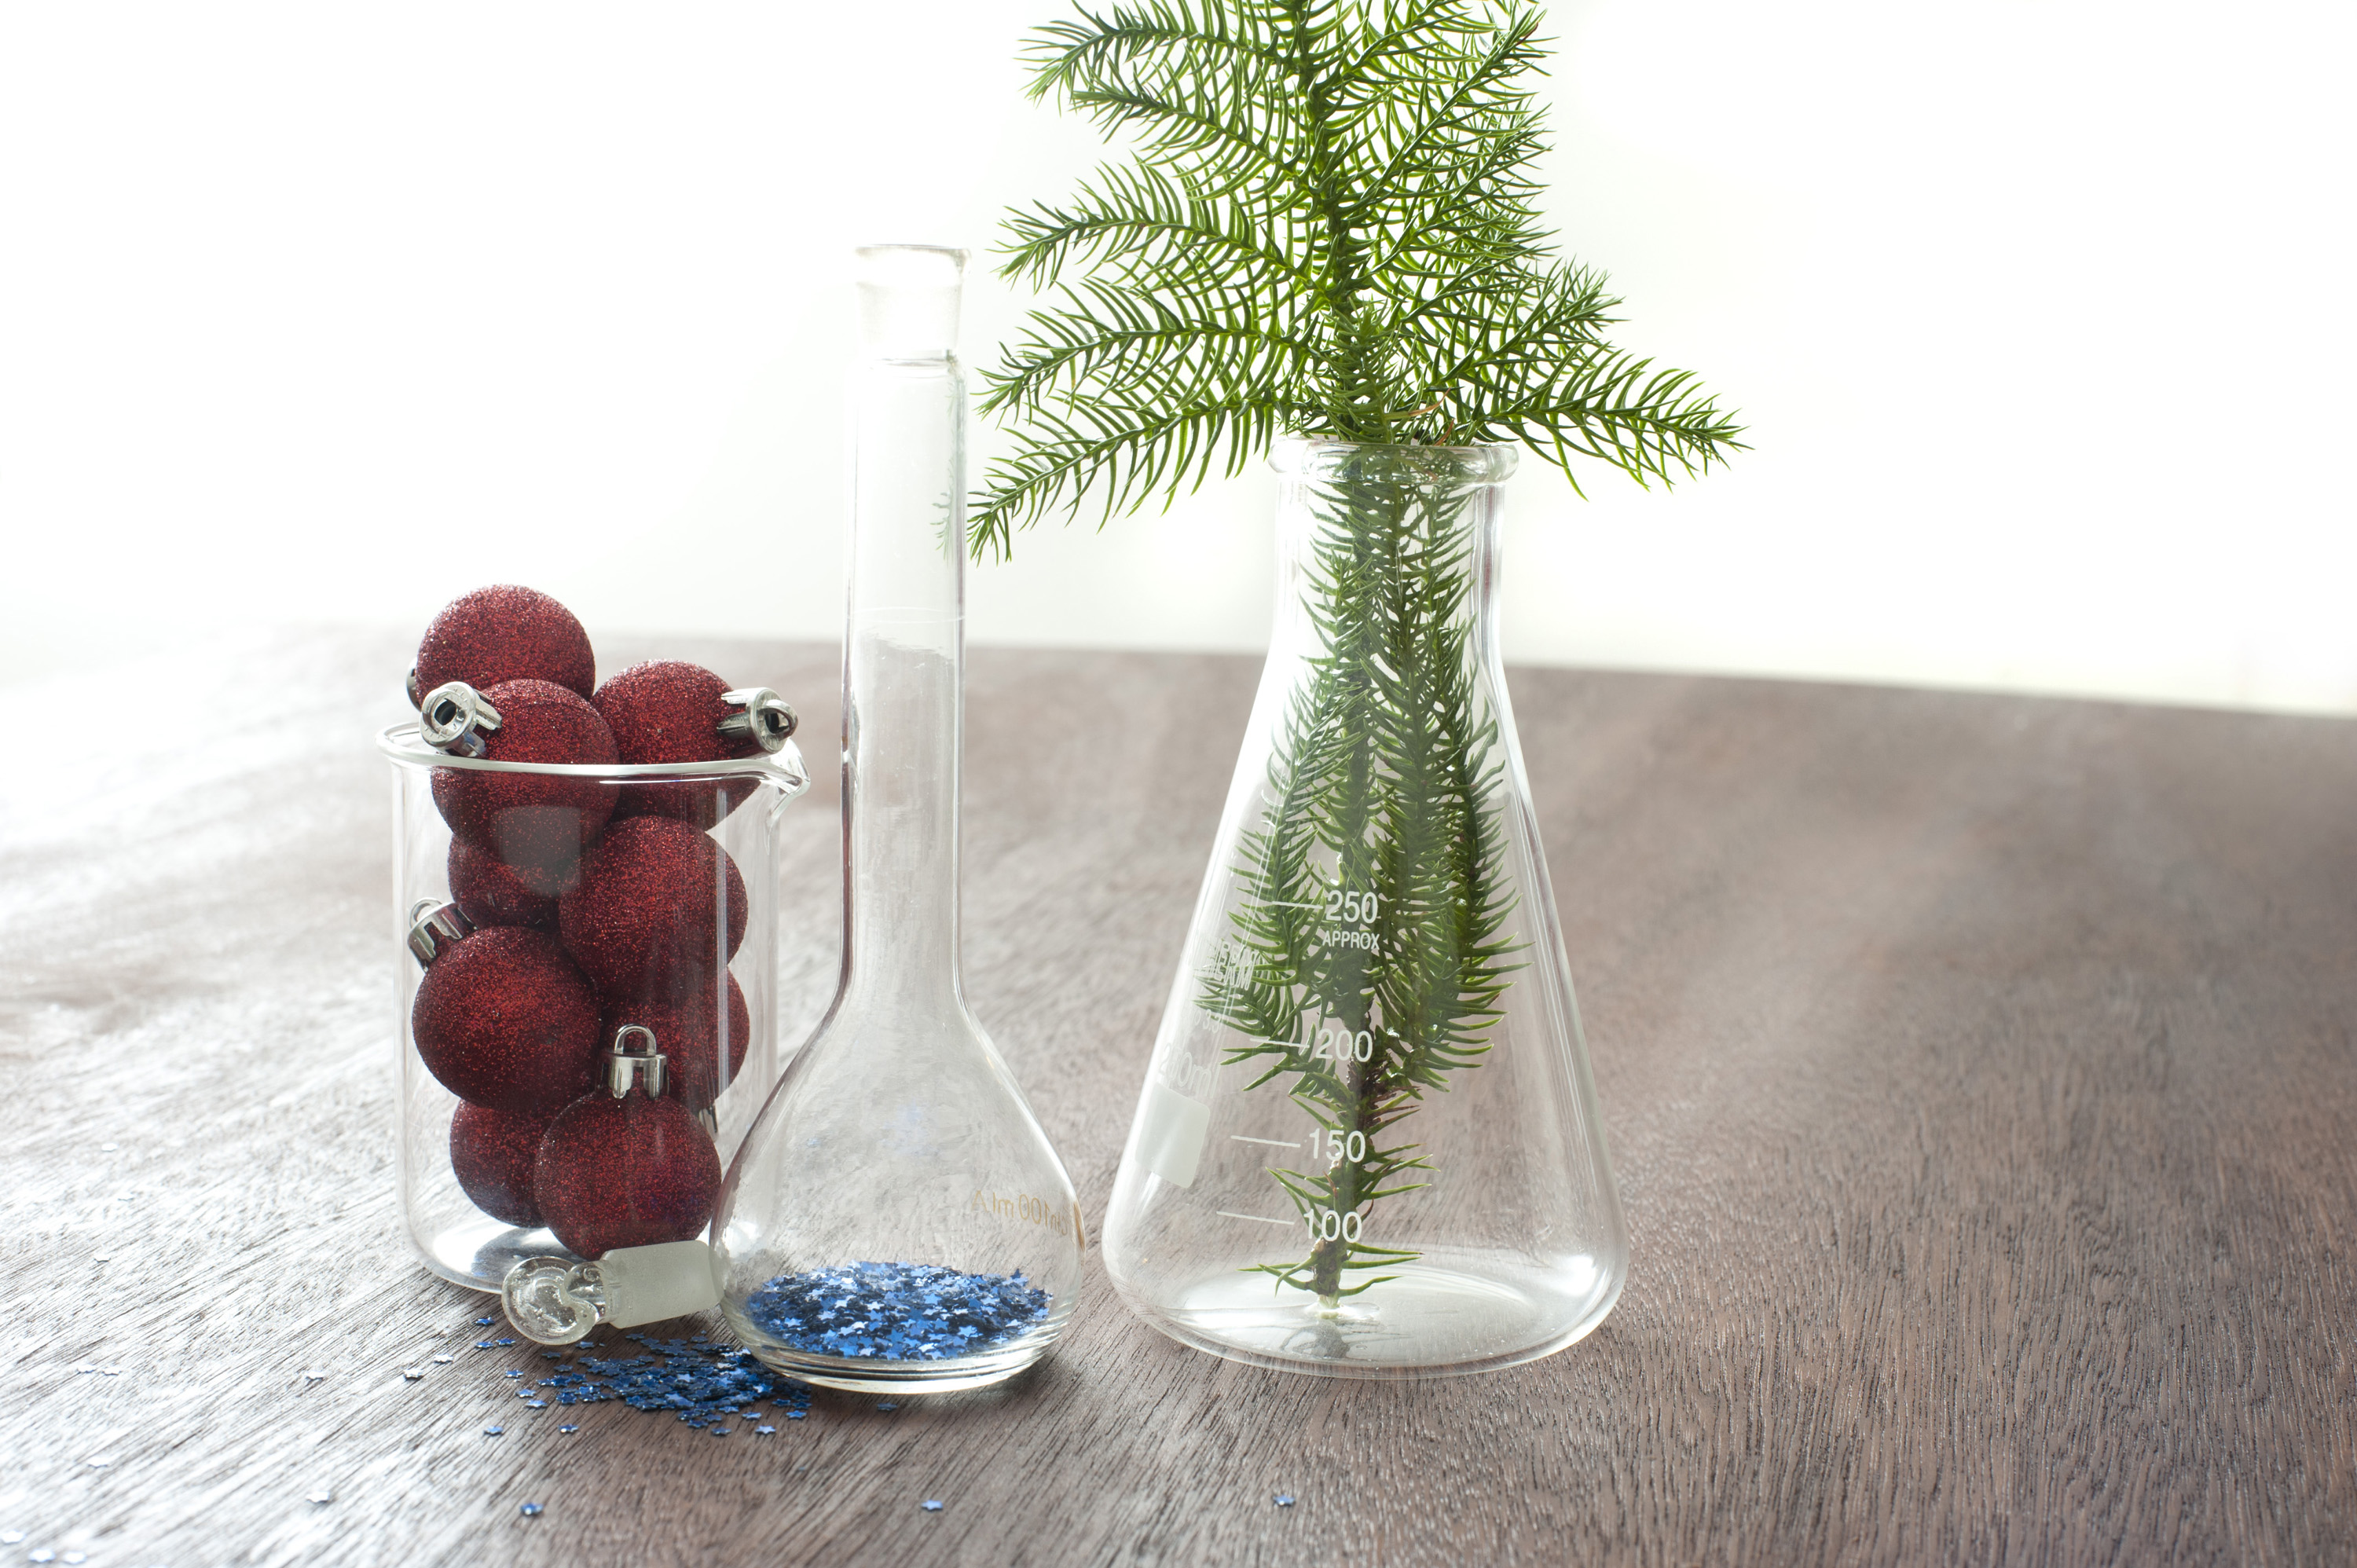 Christmas fir tree branch and decorations in chemisty glassware